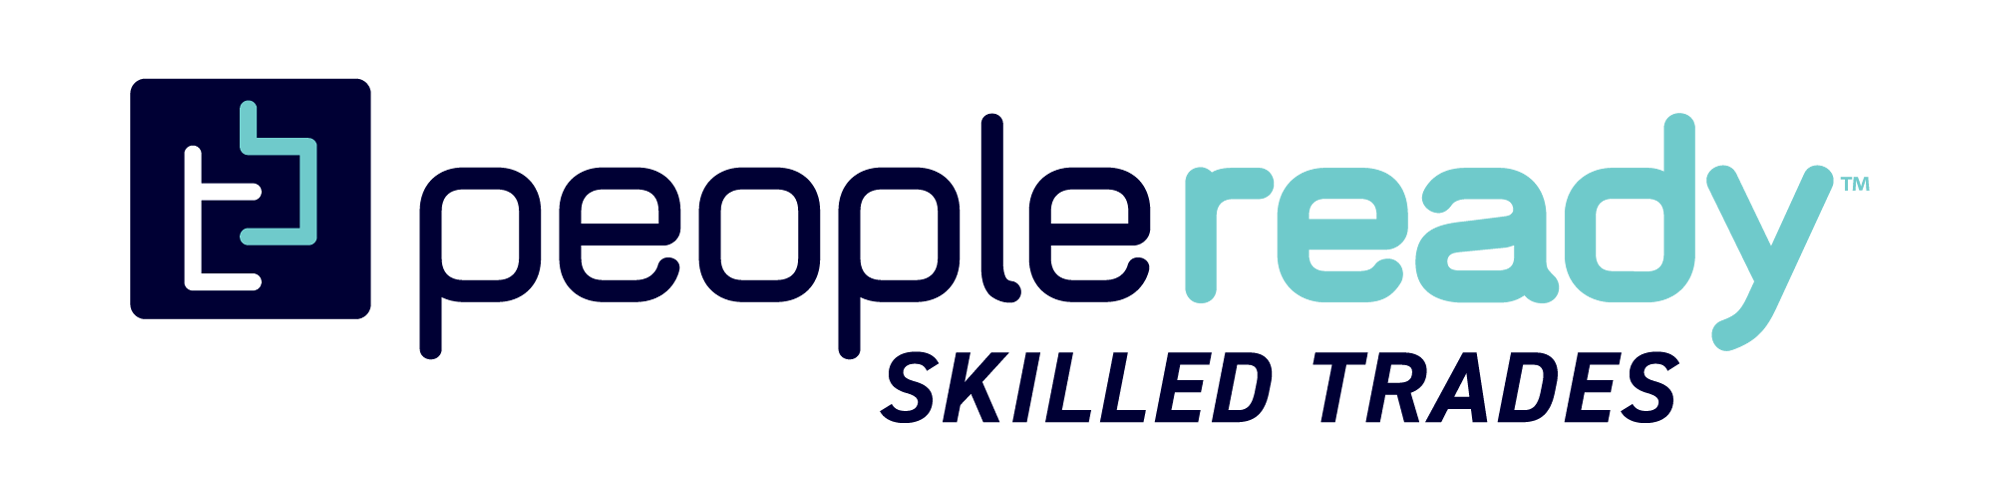 PeopleReady Skilled Trades